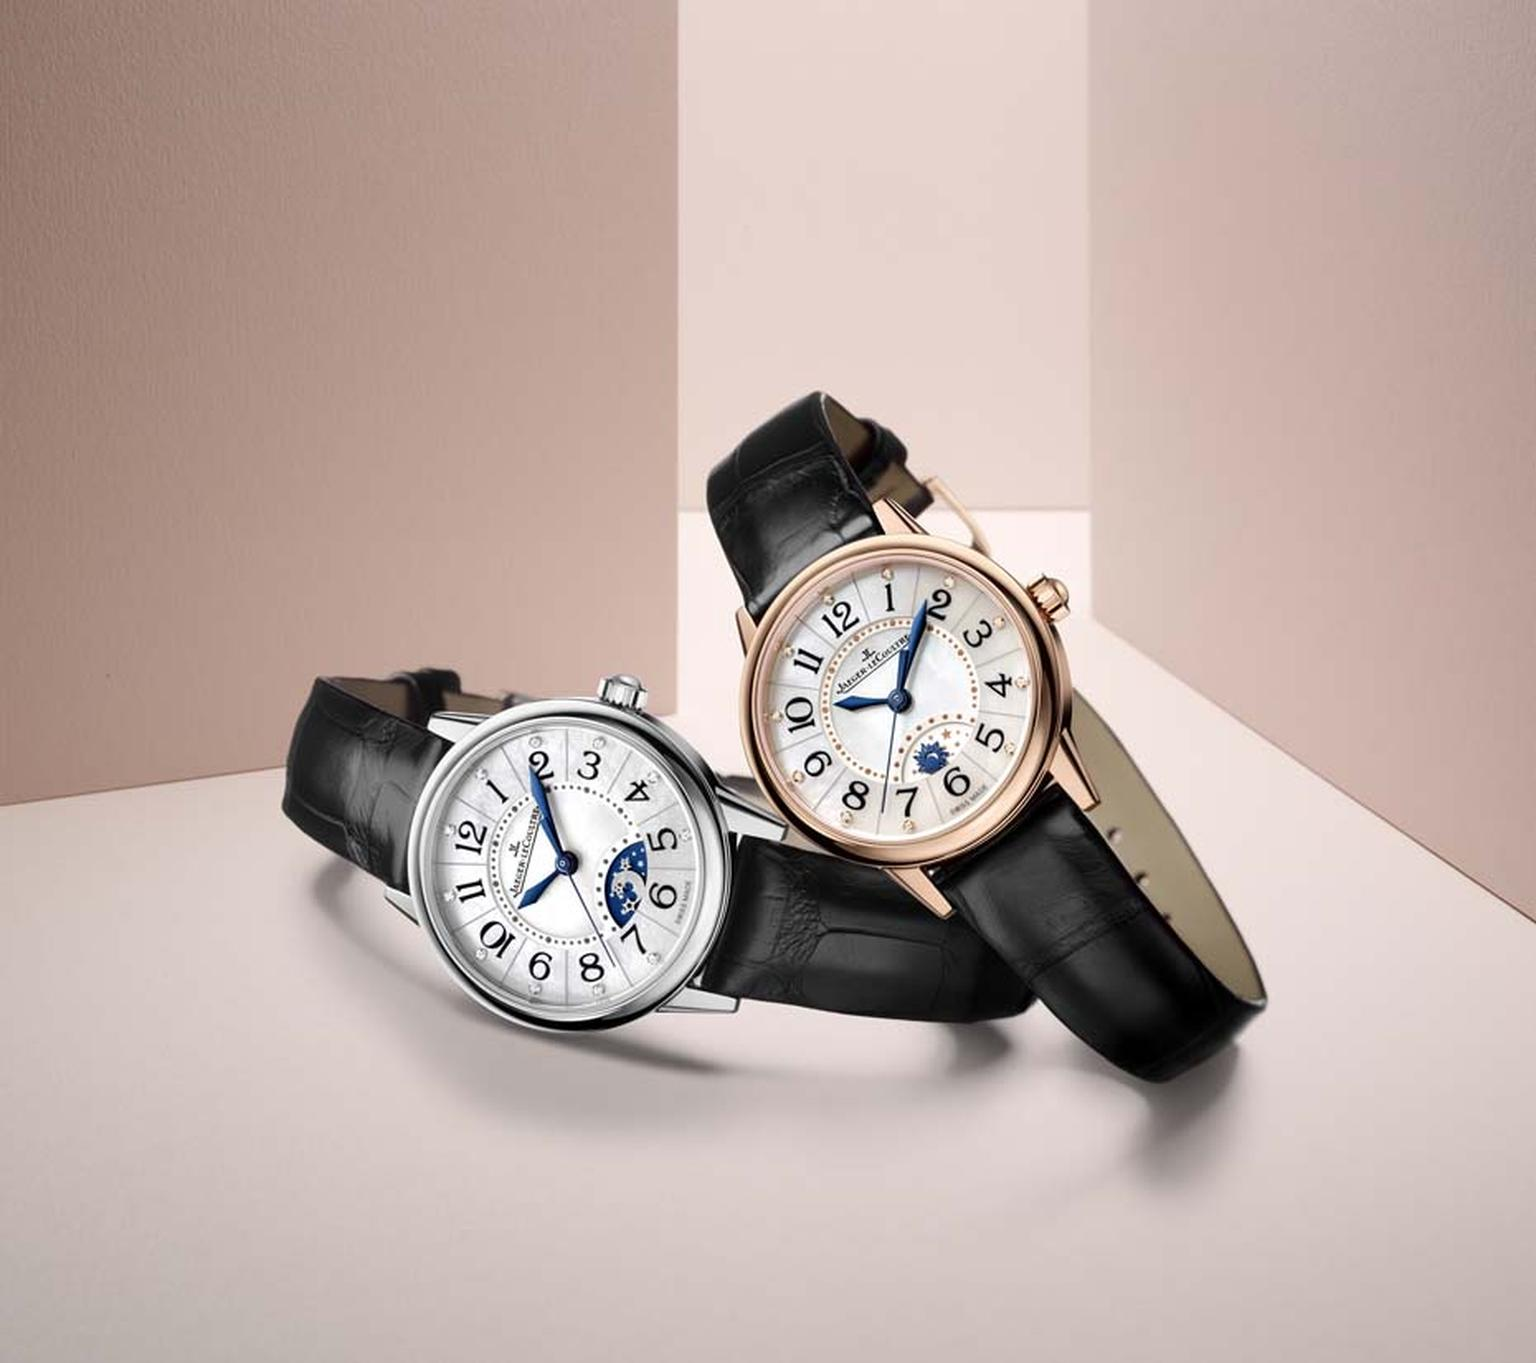 Jaeger-LeCoultre Rendez-Vous Night & Day watches are equipped with a day/night indicator in an arched window at 6 o'clock. The large black numerals, crowned with a diamond chaton, can be easily read against the glowing mother-of-pearl dial.